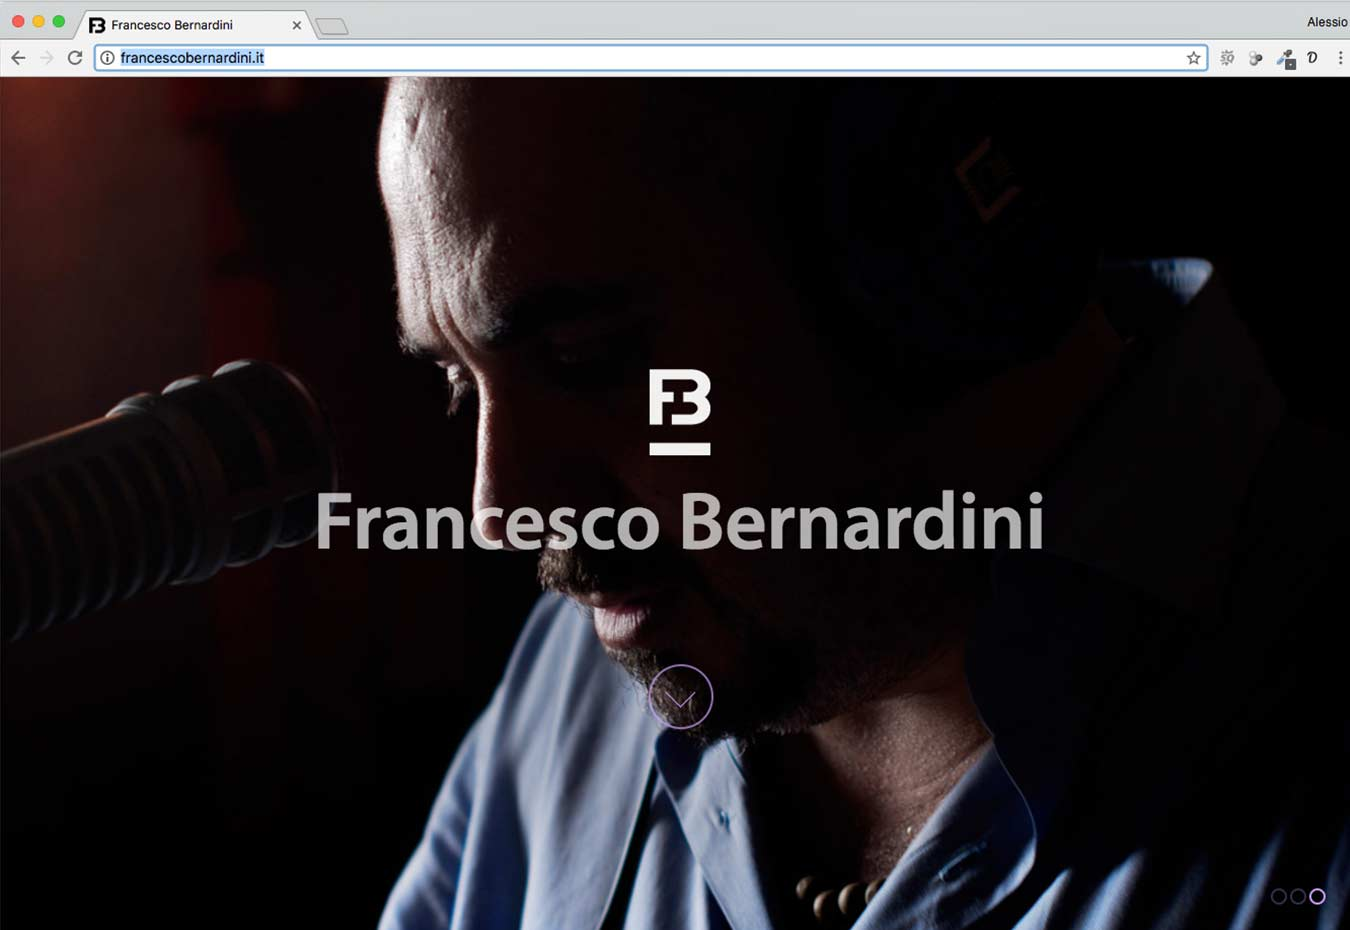 francescobernardini.it